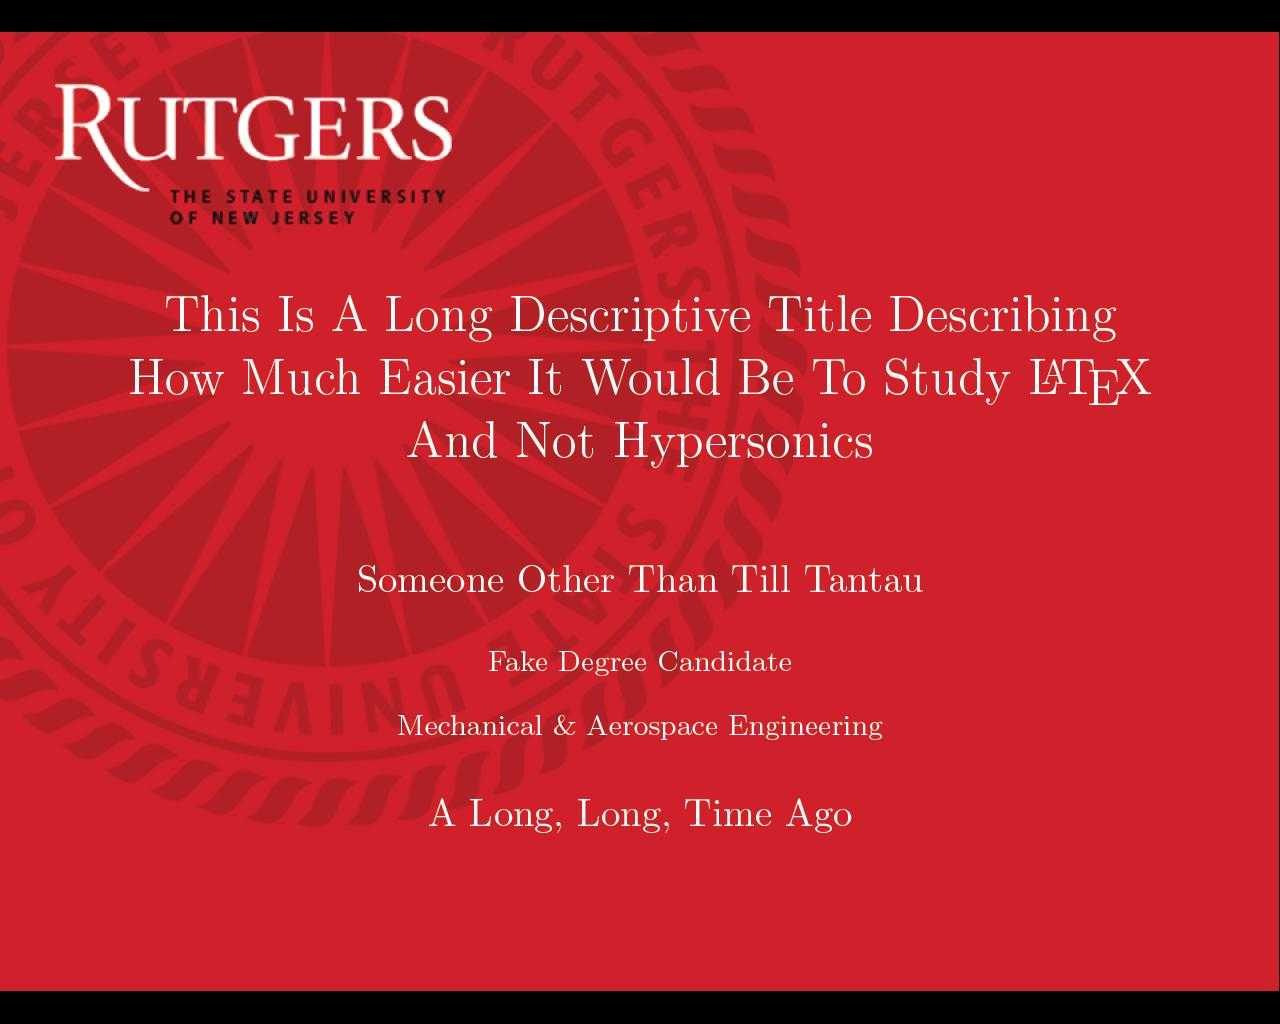 Can I Specify Title Page Customization In A Template Instead Regarding Rutgers Powerpoint Template